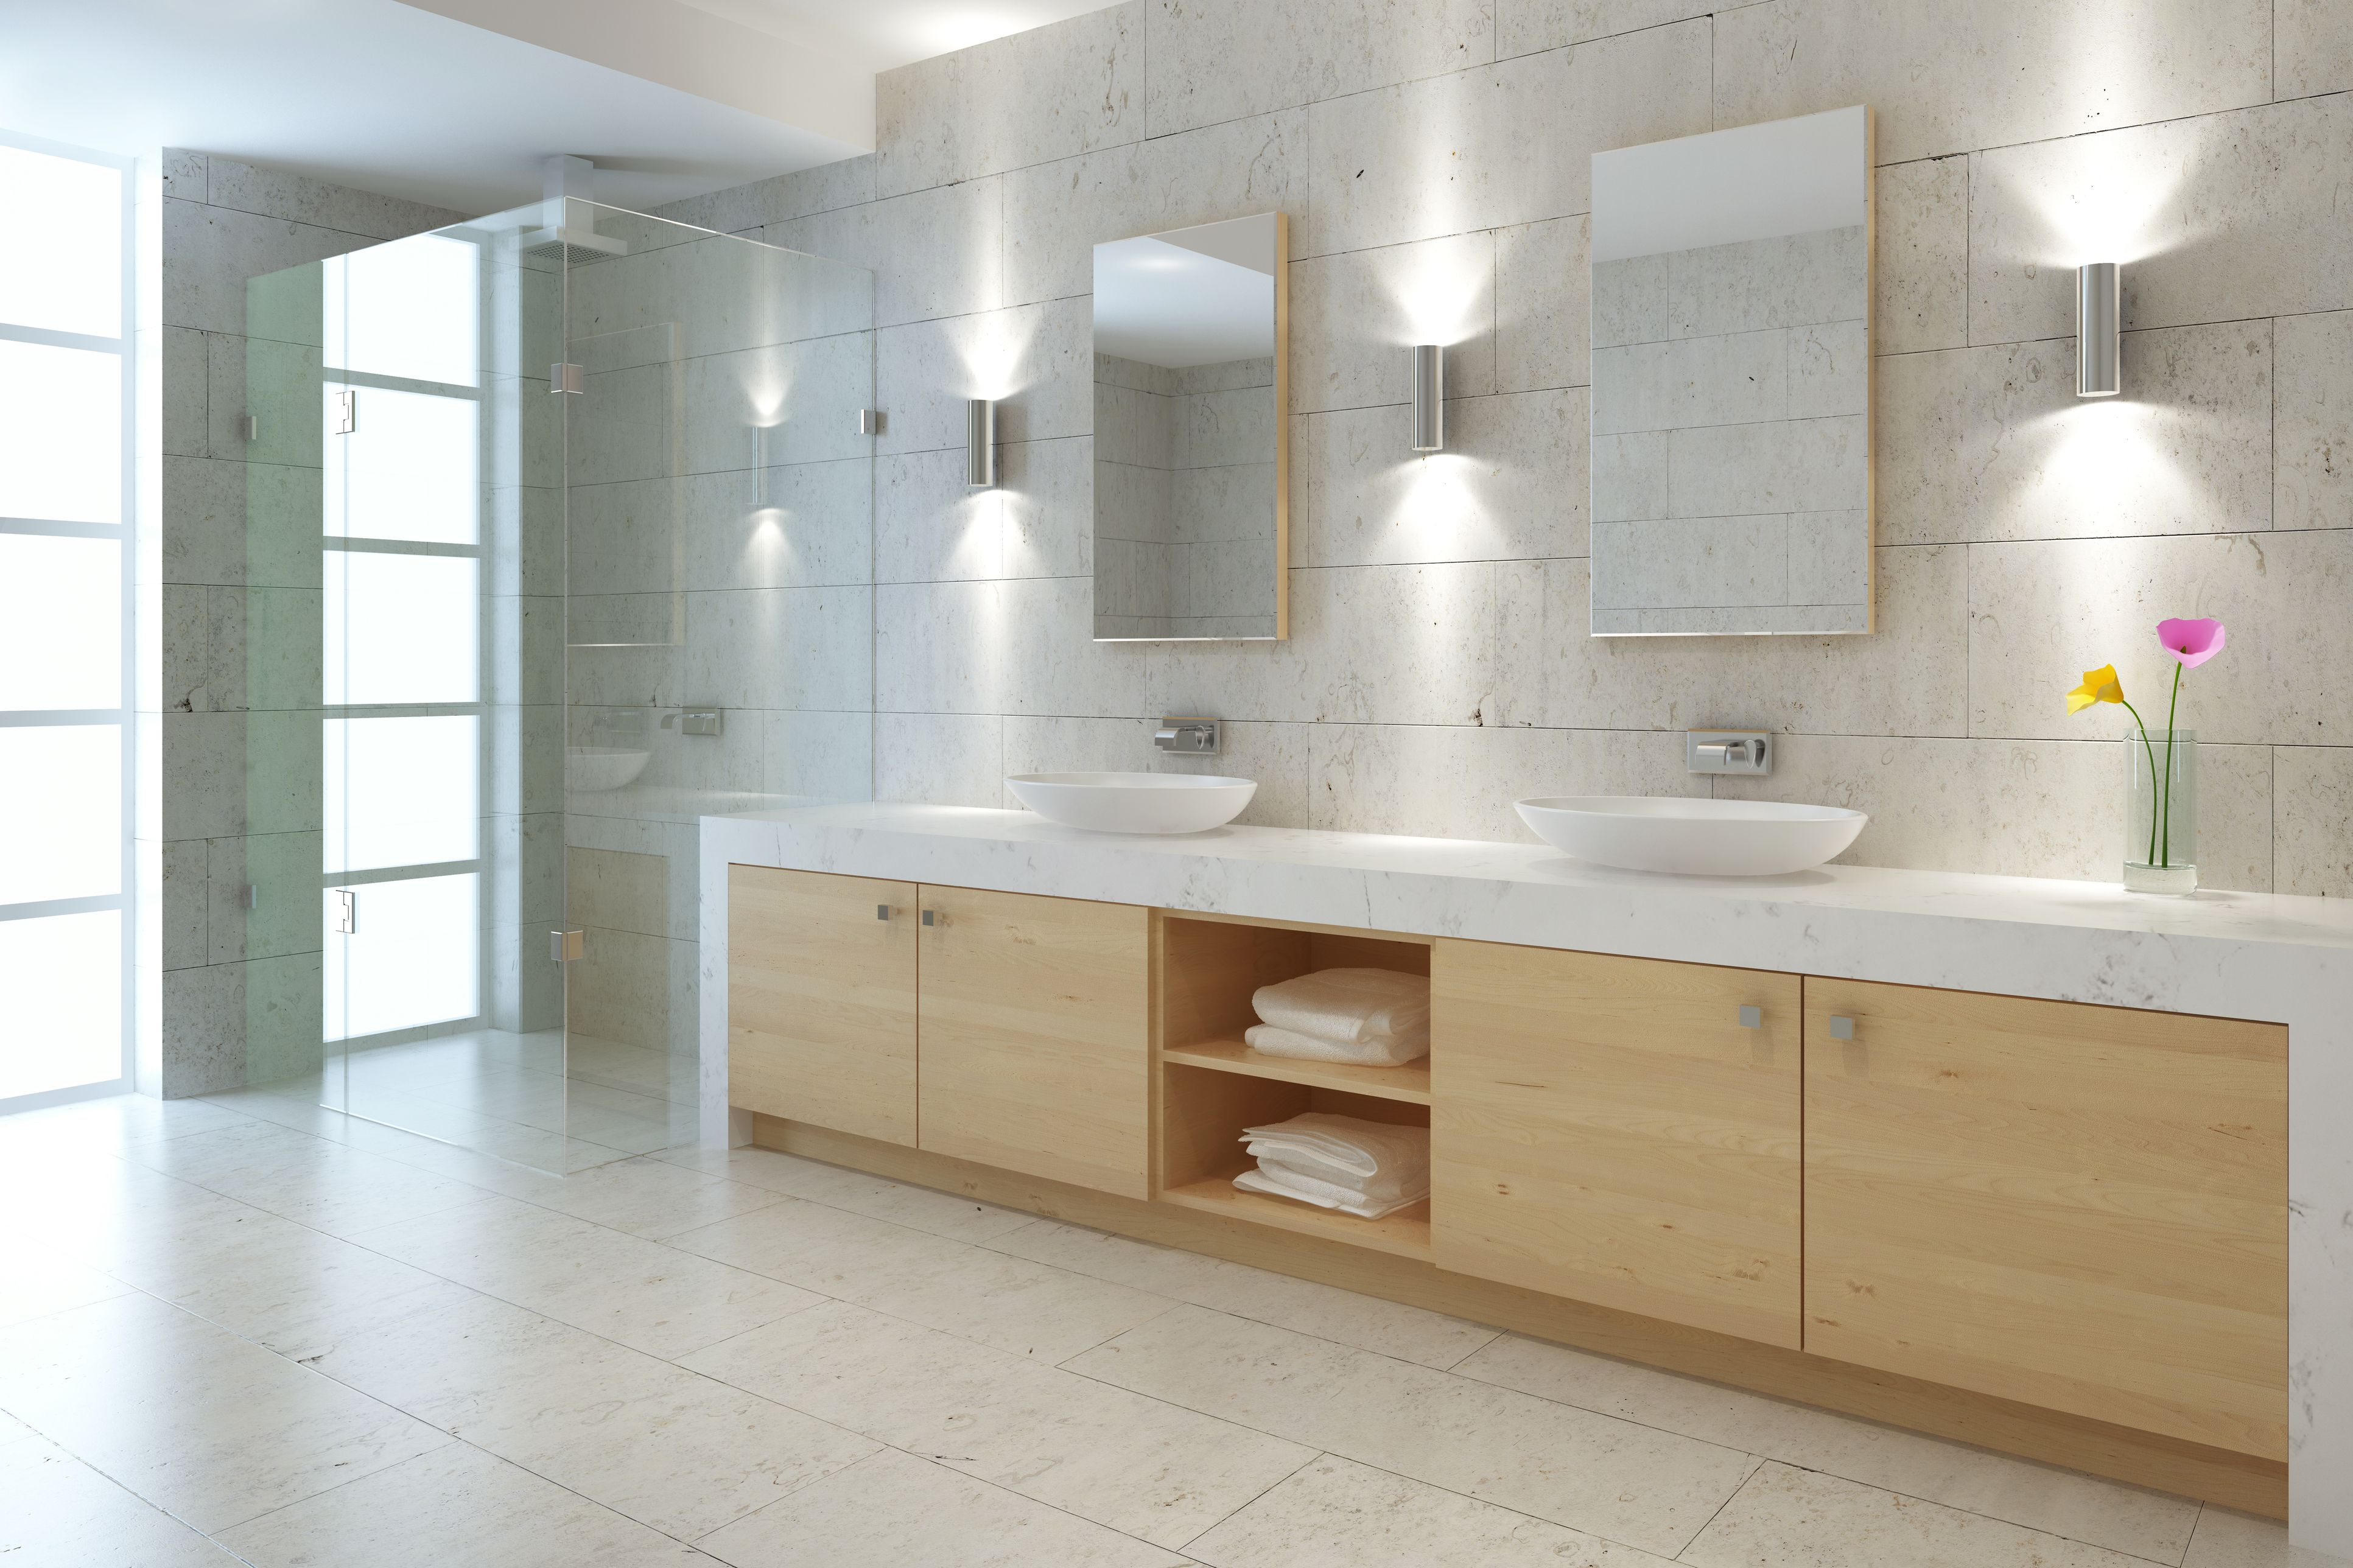 Bathroom Codes and Best Design Practices